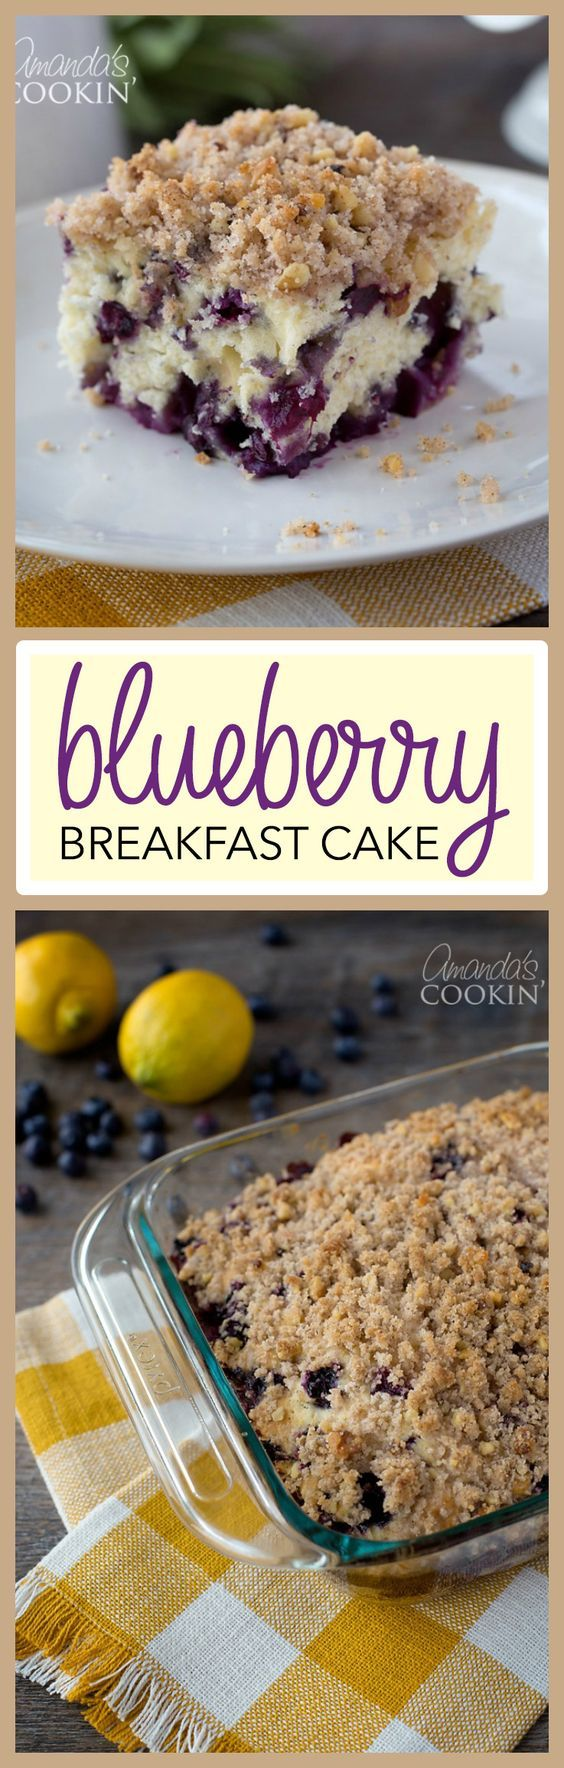 This blueberry breakfast cake is jam-packed with flavor! Delicious blueberries make this breakfast one to make again and again.